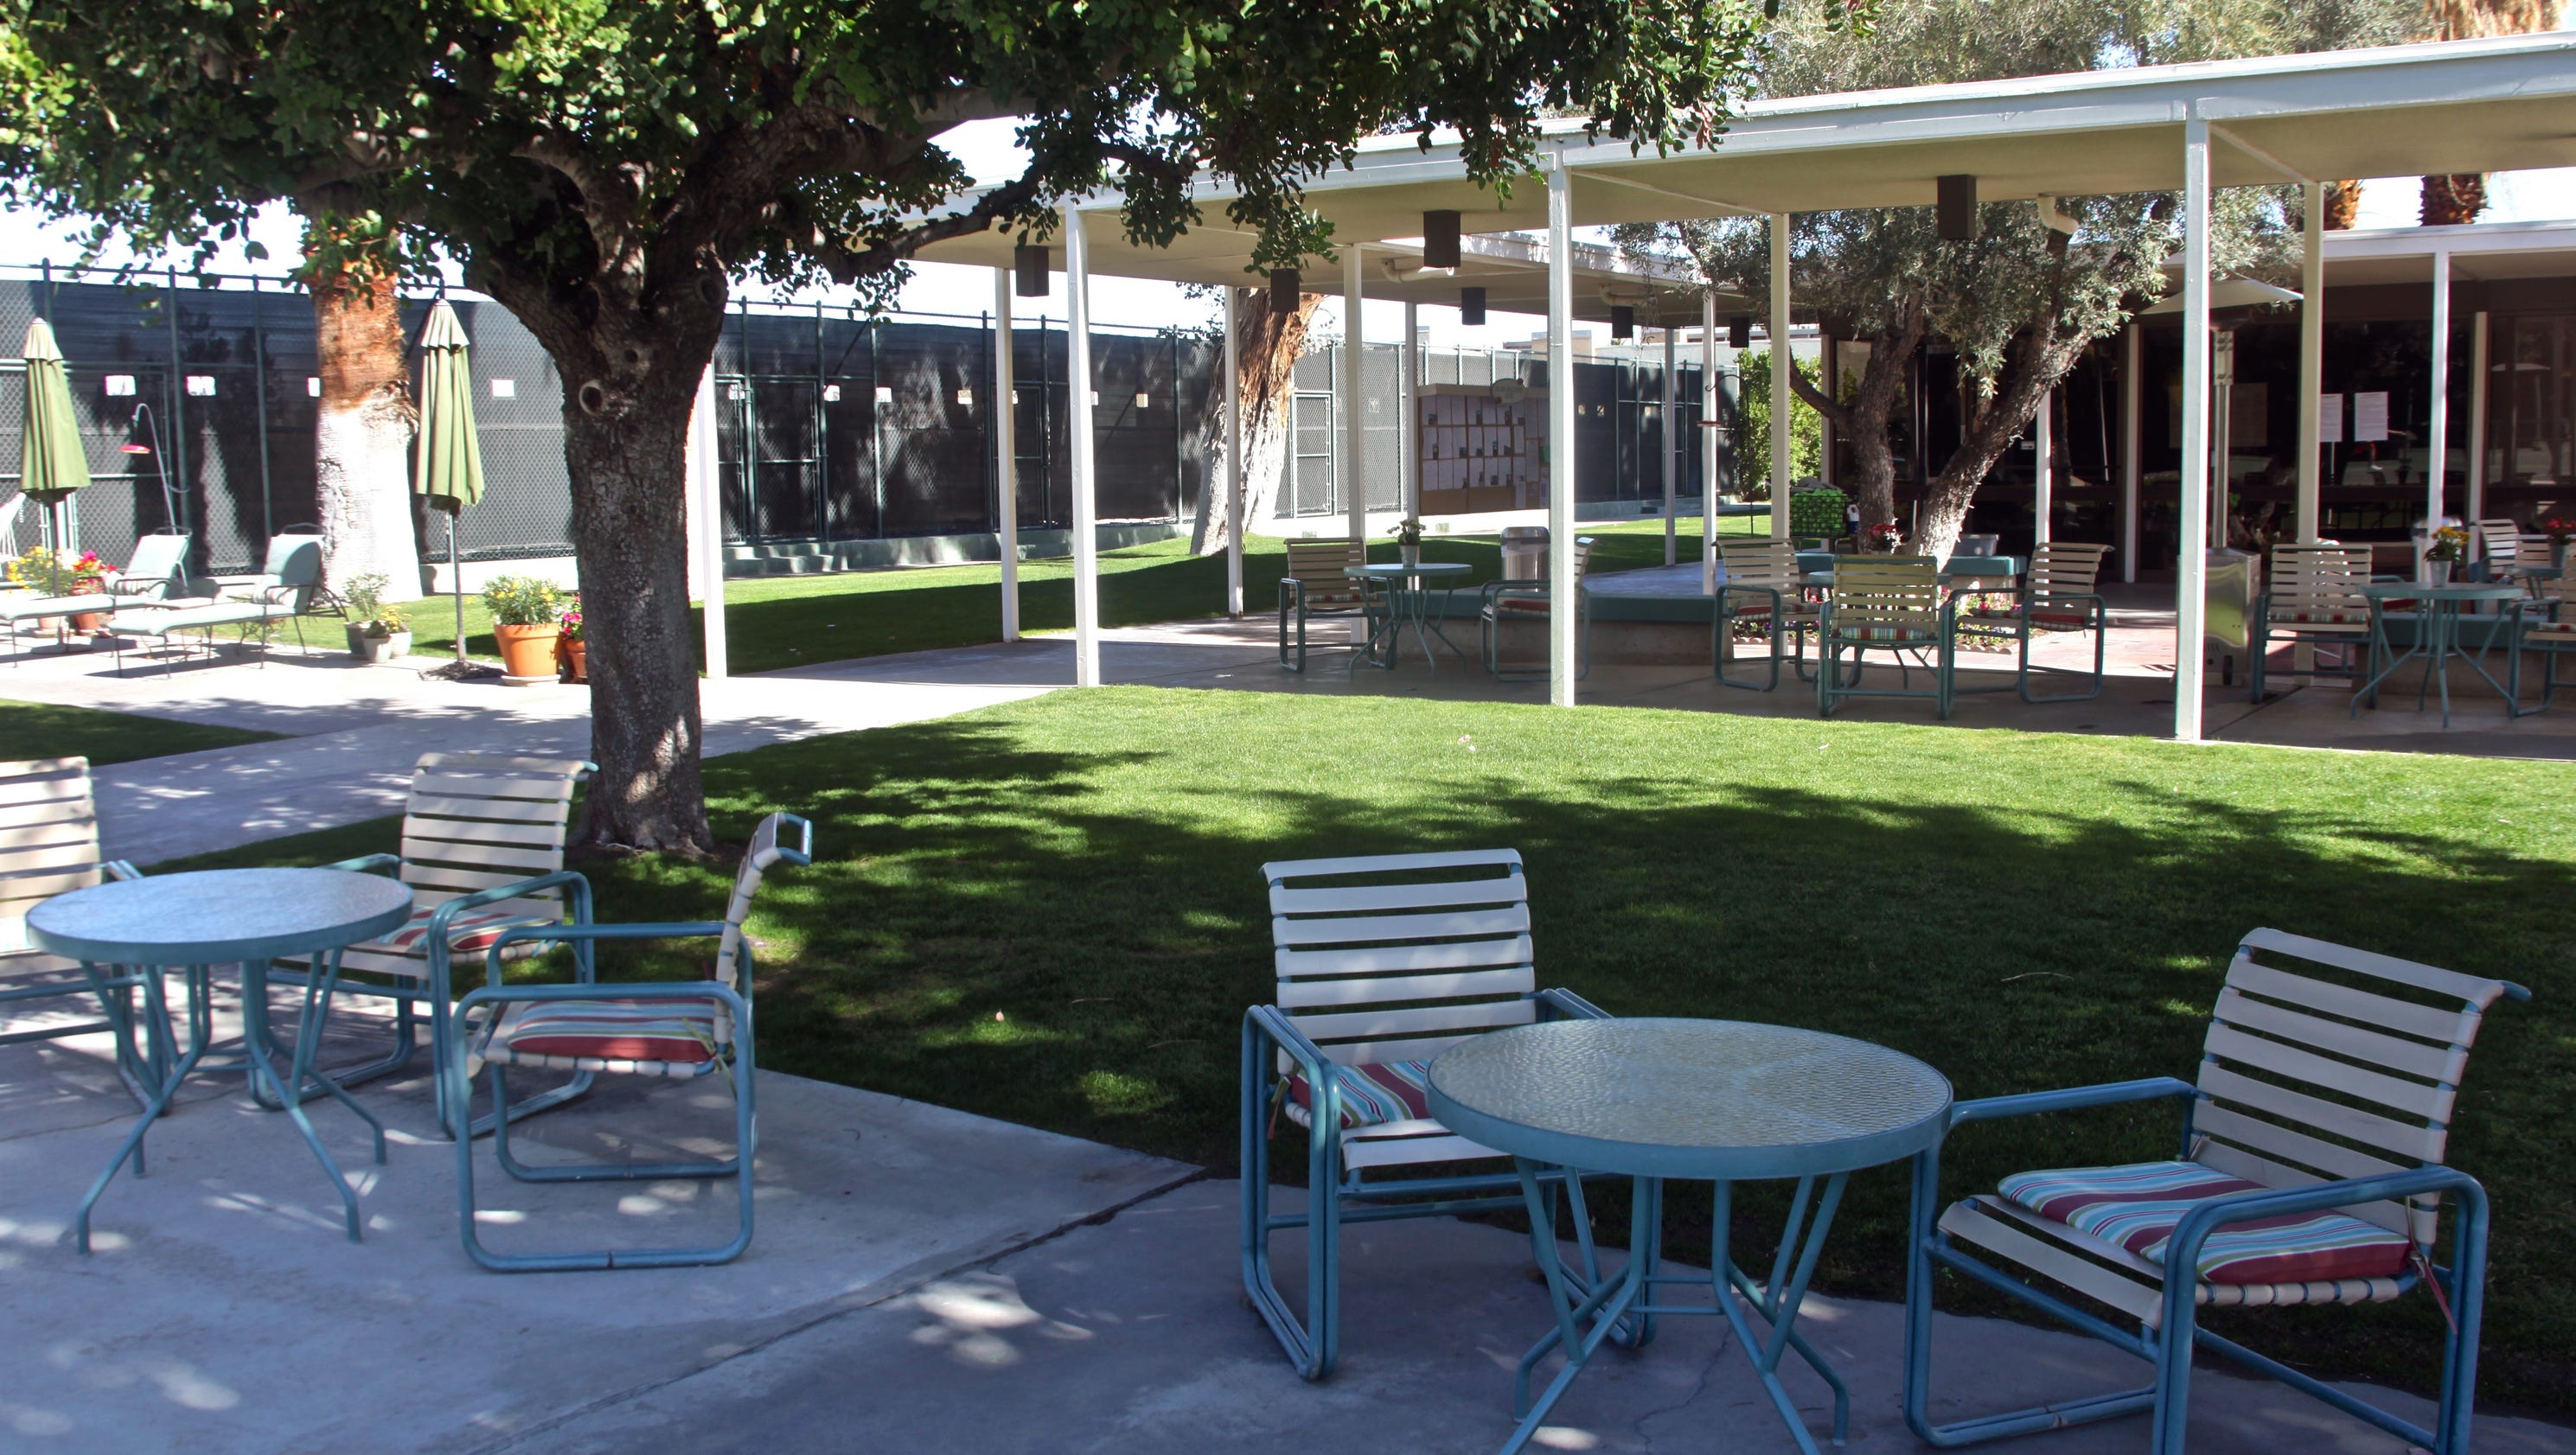 plaza racquet club property sits abandoned still unsold